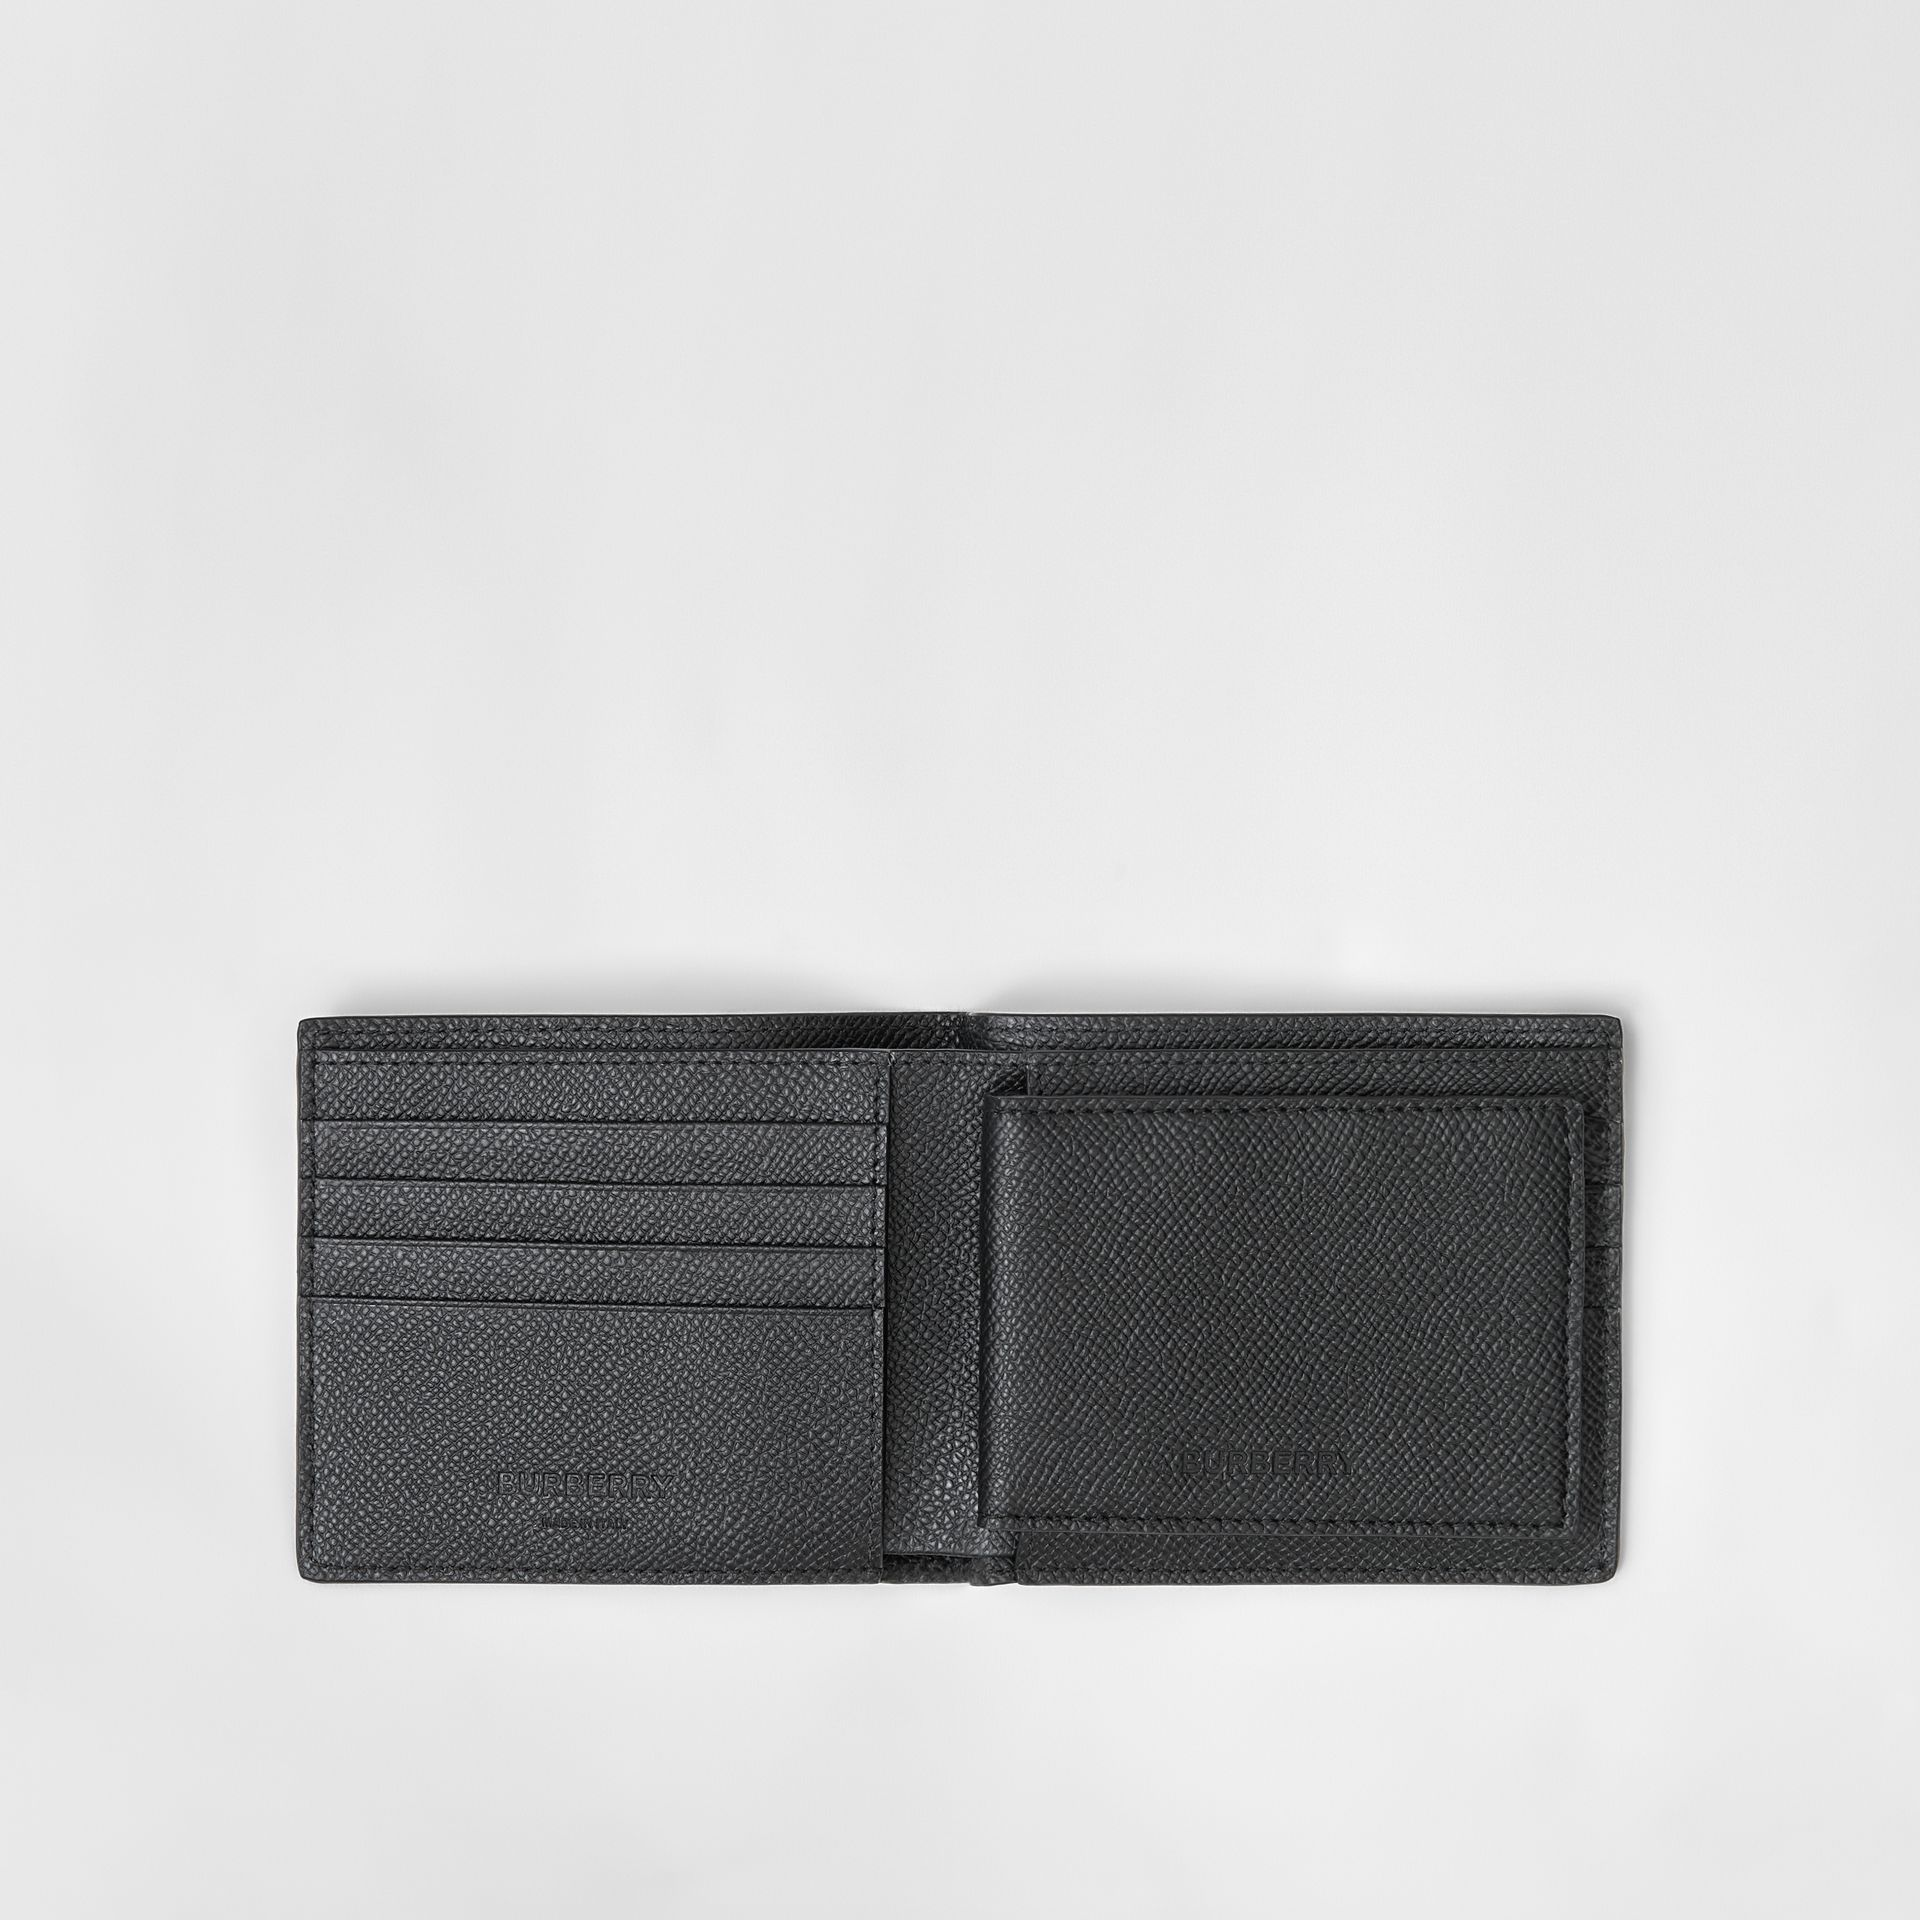 Grainy Leather Bifold Wallet with ID Card Case in Black - Men | Burberry - gallery image 2